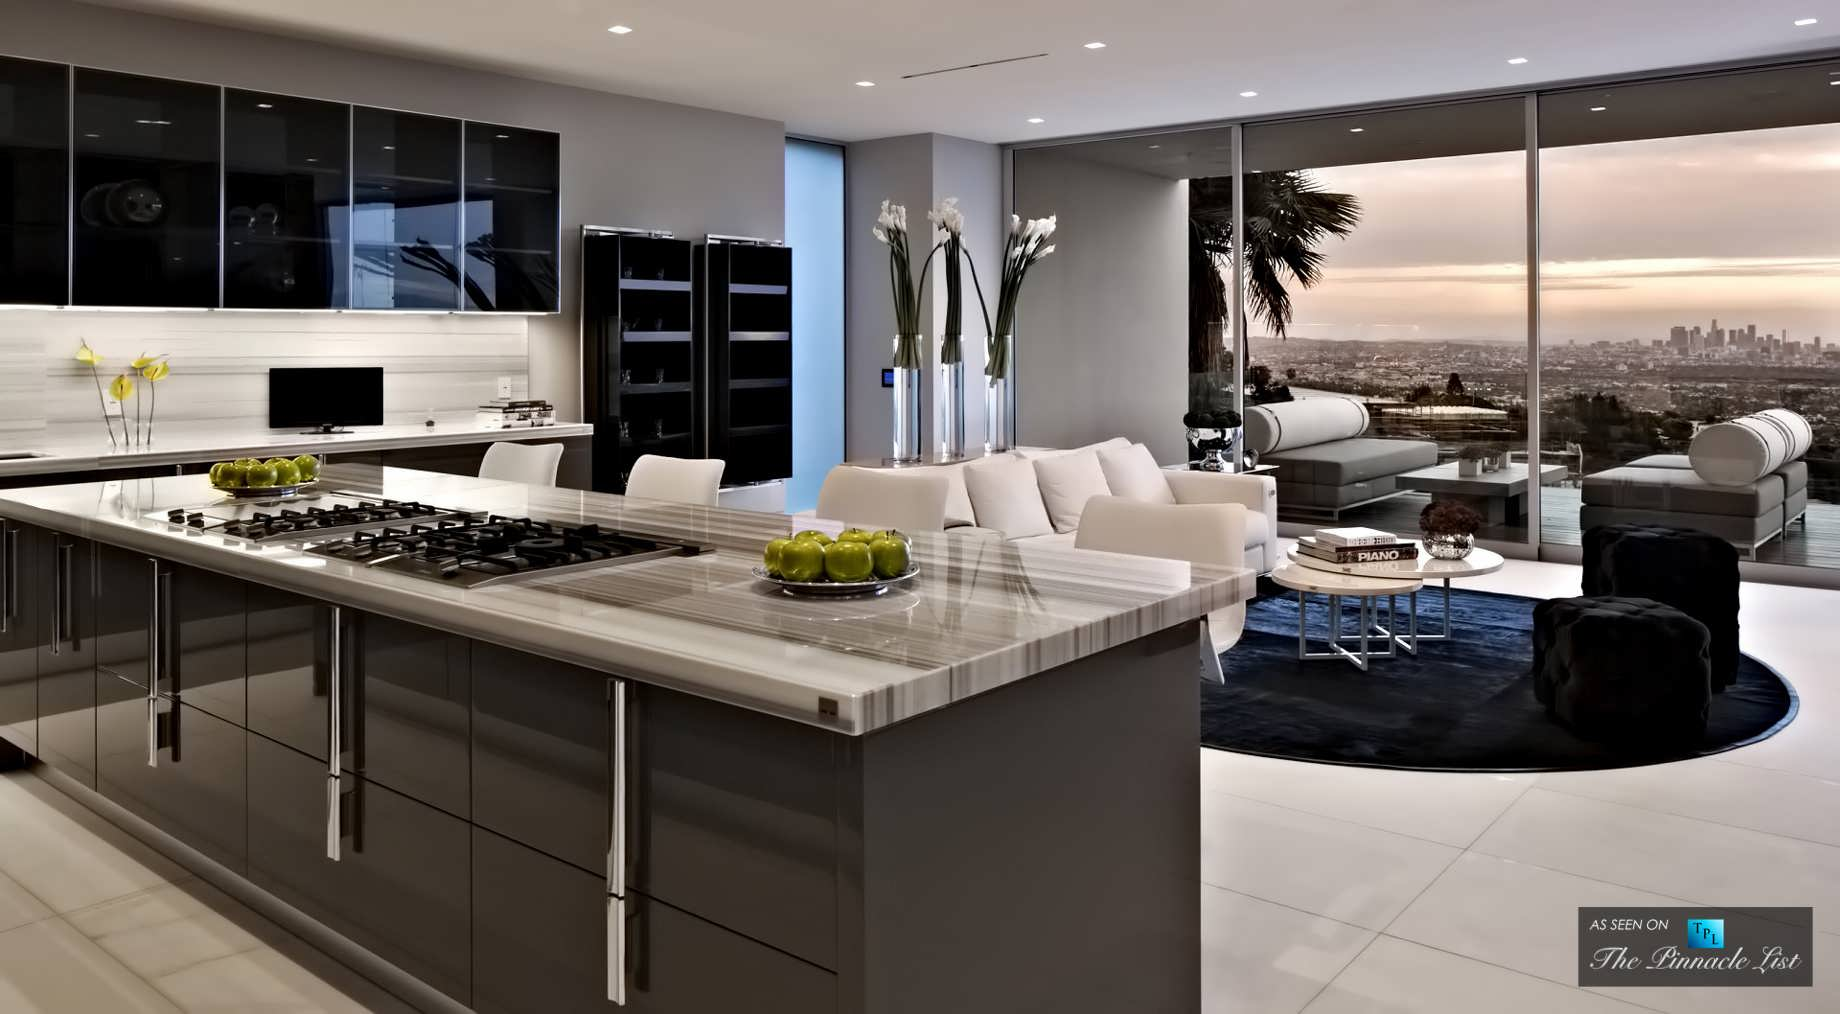 Luxury Modern Kitchen Designing The Luxury Kitchen Of Tomorrow Today The